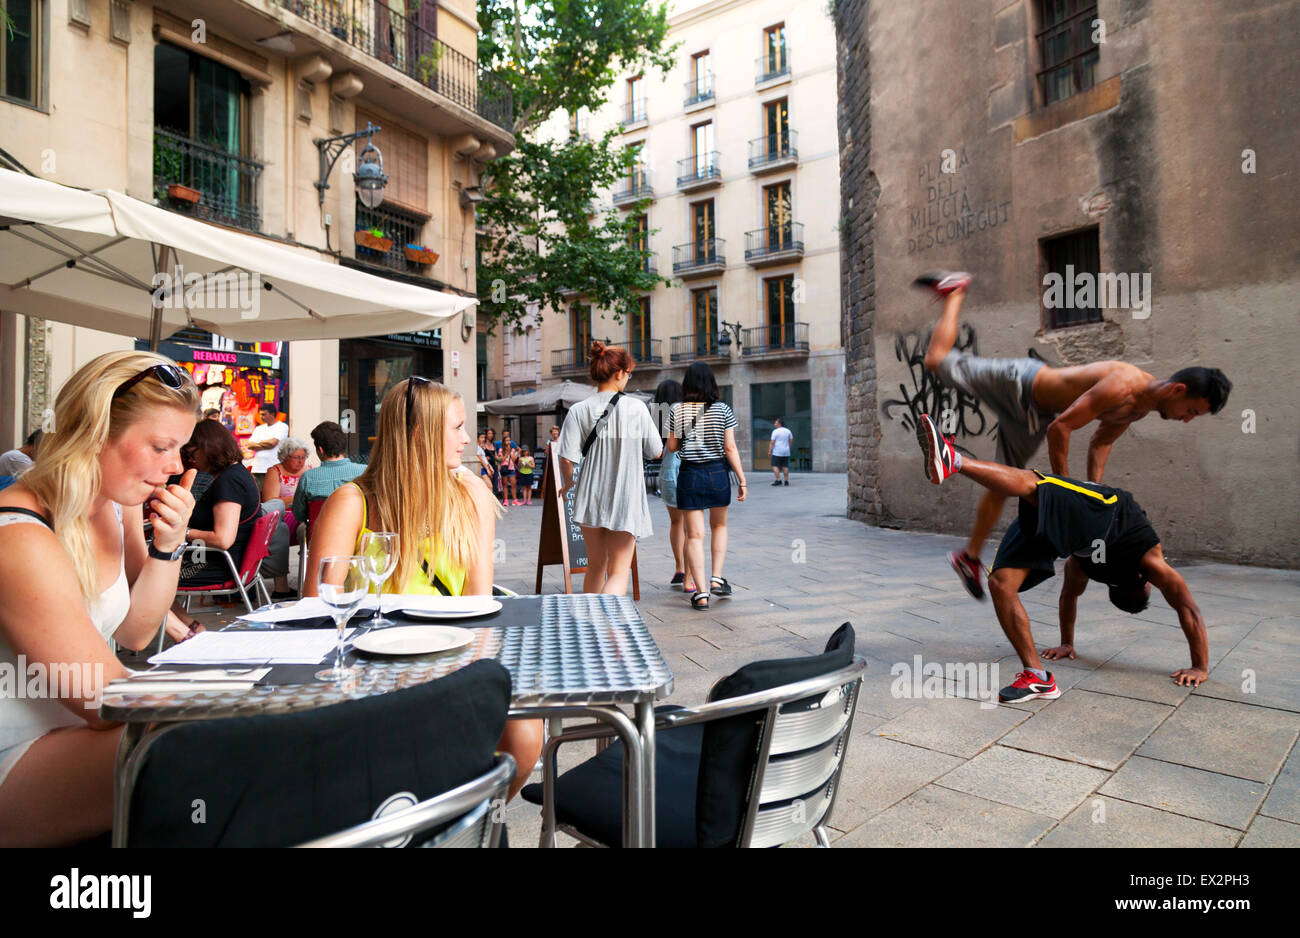 People at a tapas bar watching street entertainers, Placa de Sant Josep Oriol, Gothic Quarter, Barcelona Spain Europe - Stock Image